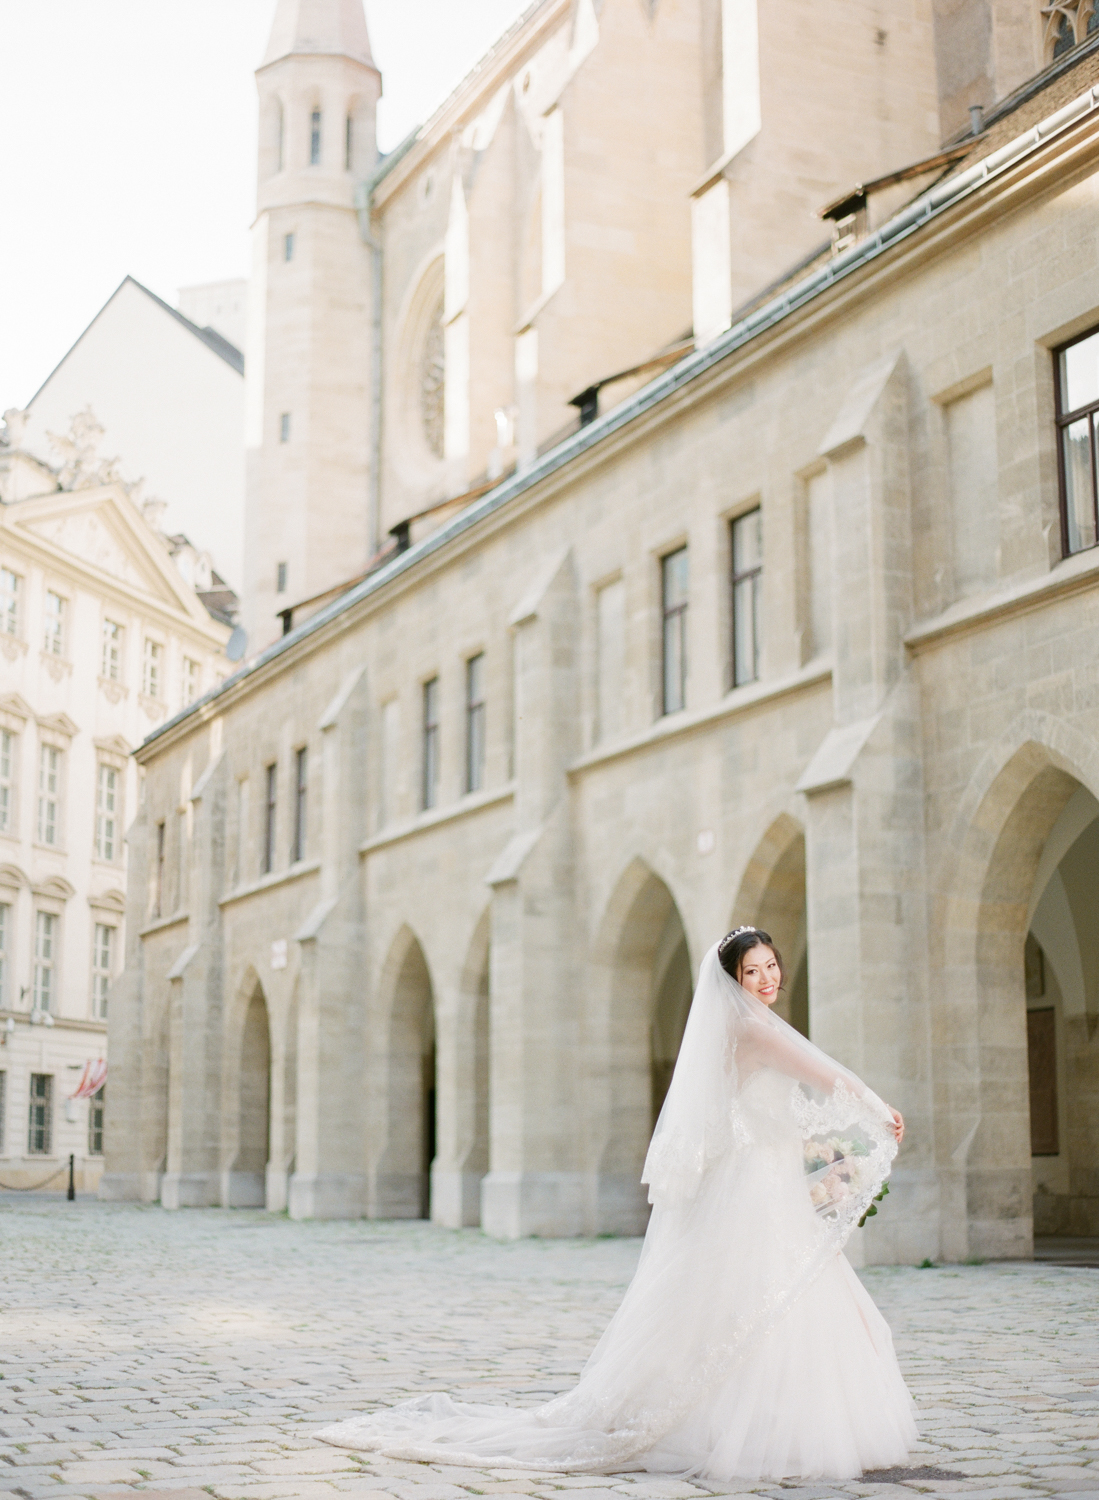 palais pallavicini wedding hotel imperial vienna wedding photographer nikol bodnarova photography 442.JPG